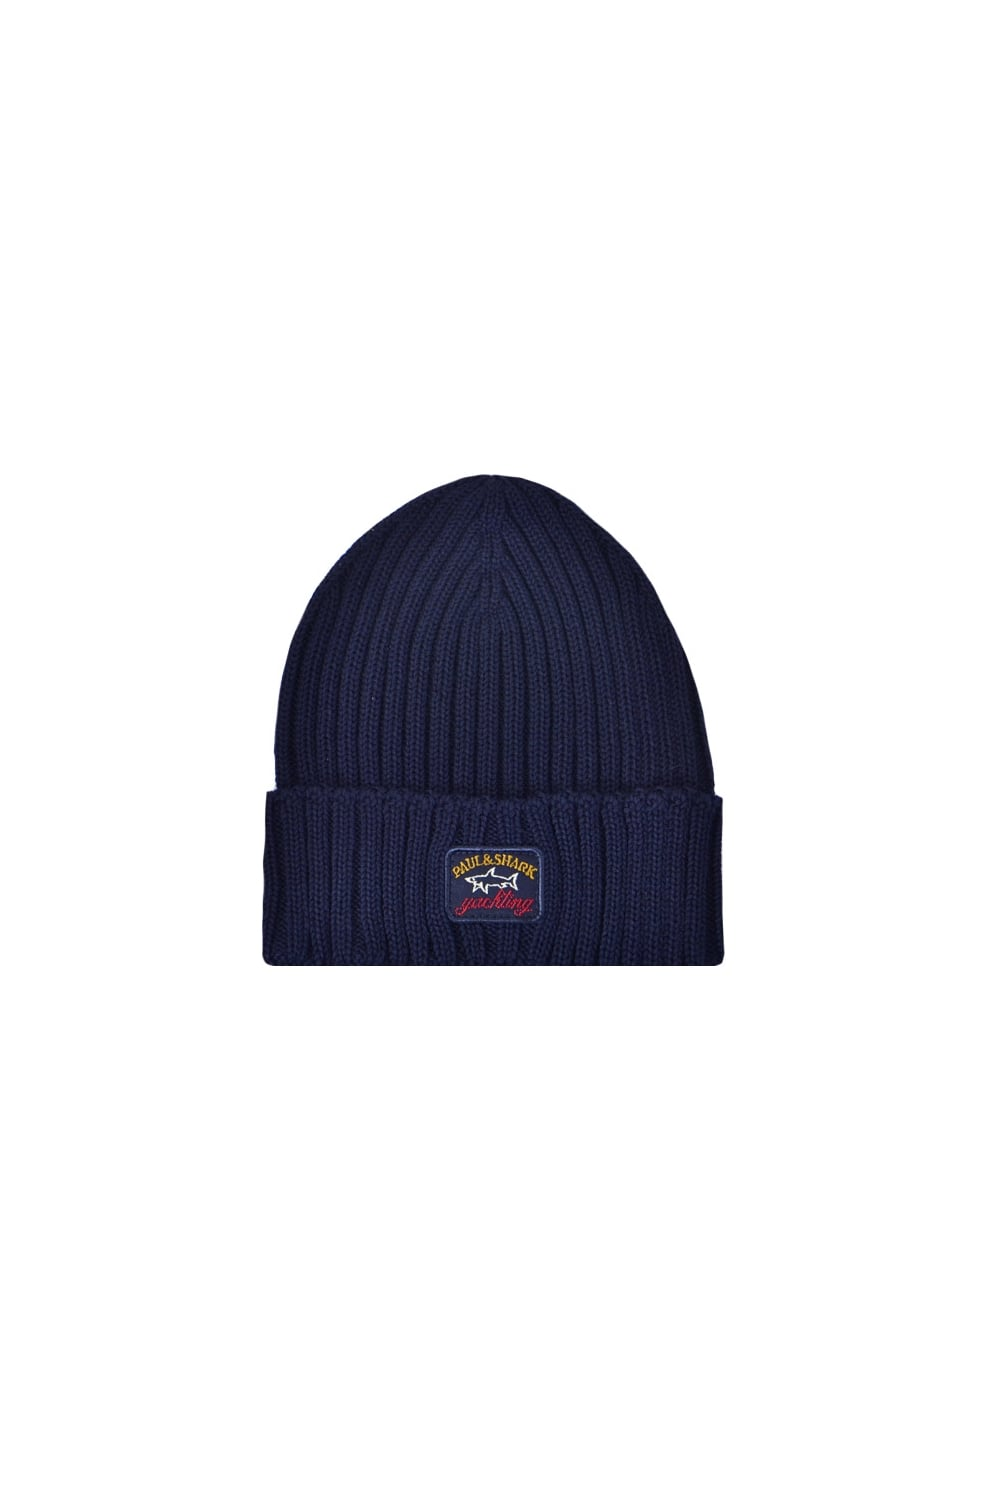 3f0109bcc066c Paul   Shark Paul And Shark Beanie - Accessories from Michael ...